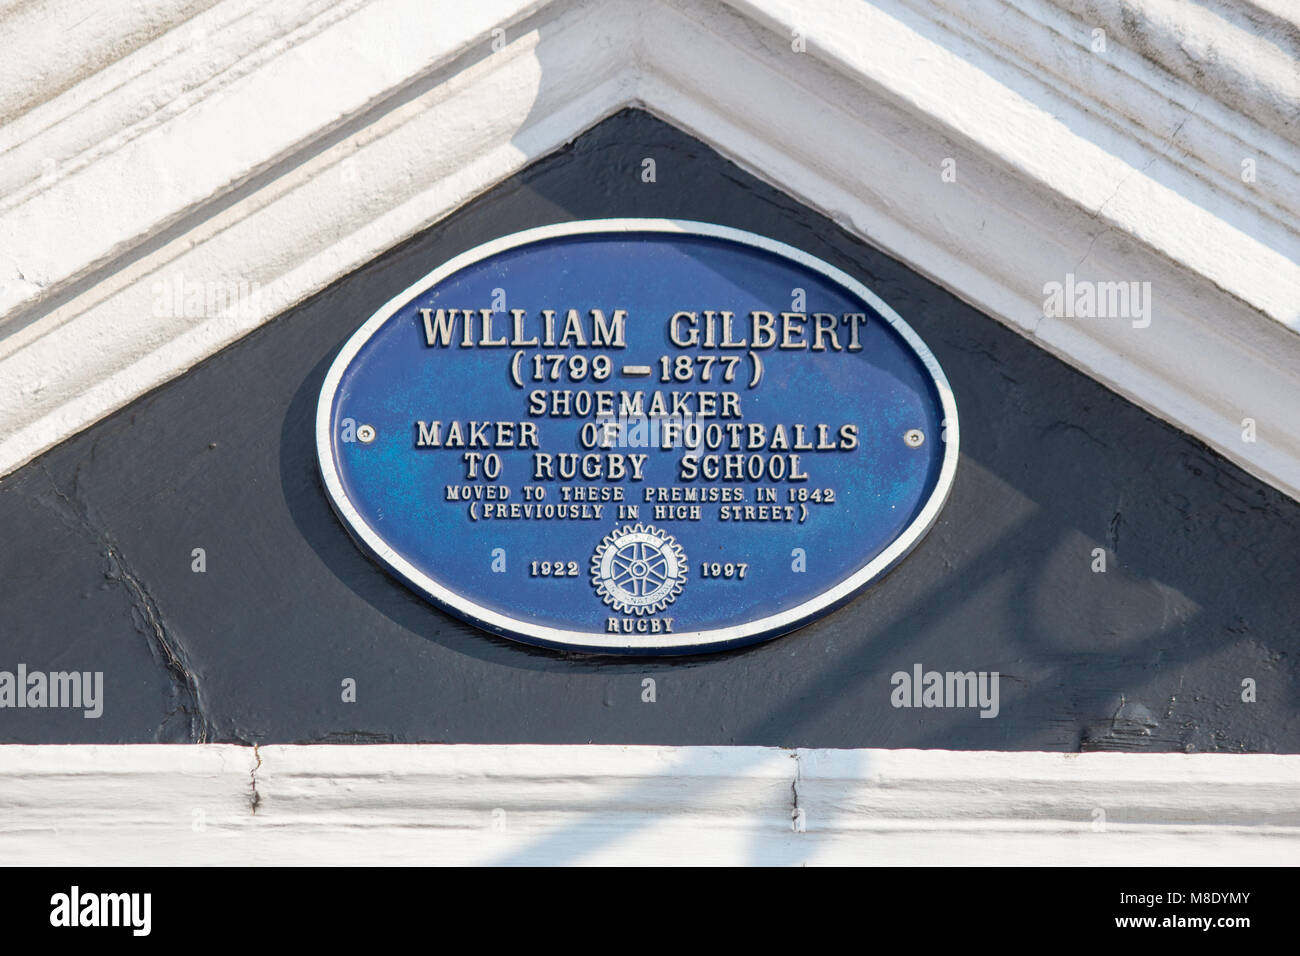 The sign above the Webb Ellis Museum in Rugby honouring the rugby Football shoe maker  William Gilbert. - Stock Image